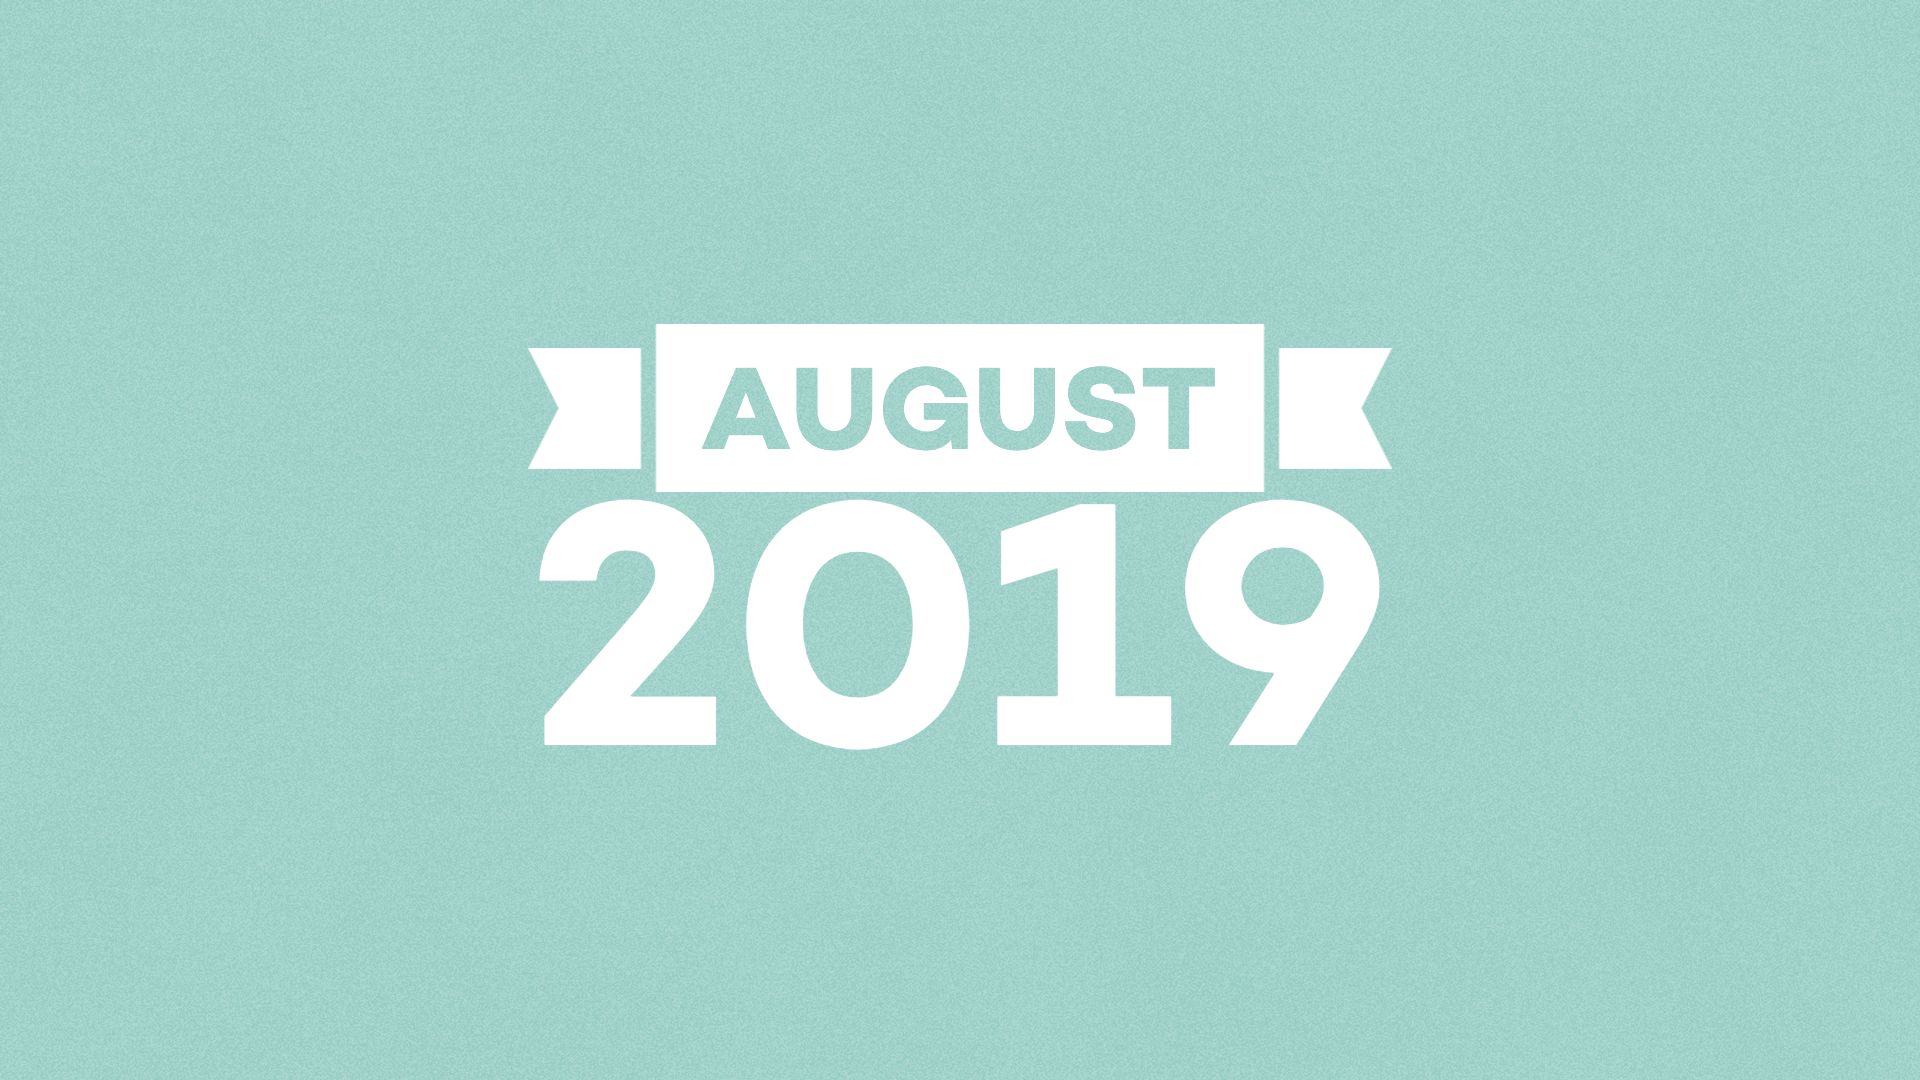 CMG Editor - August 26 2019 (1).png